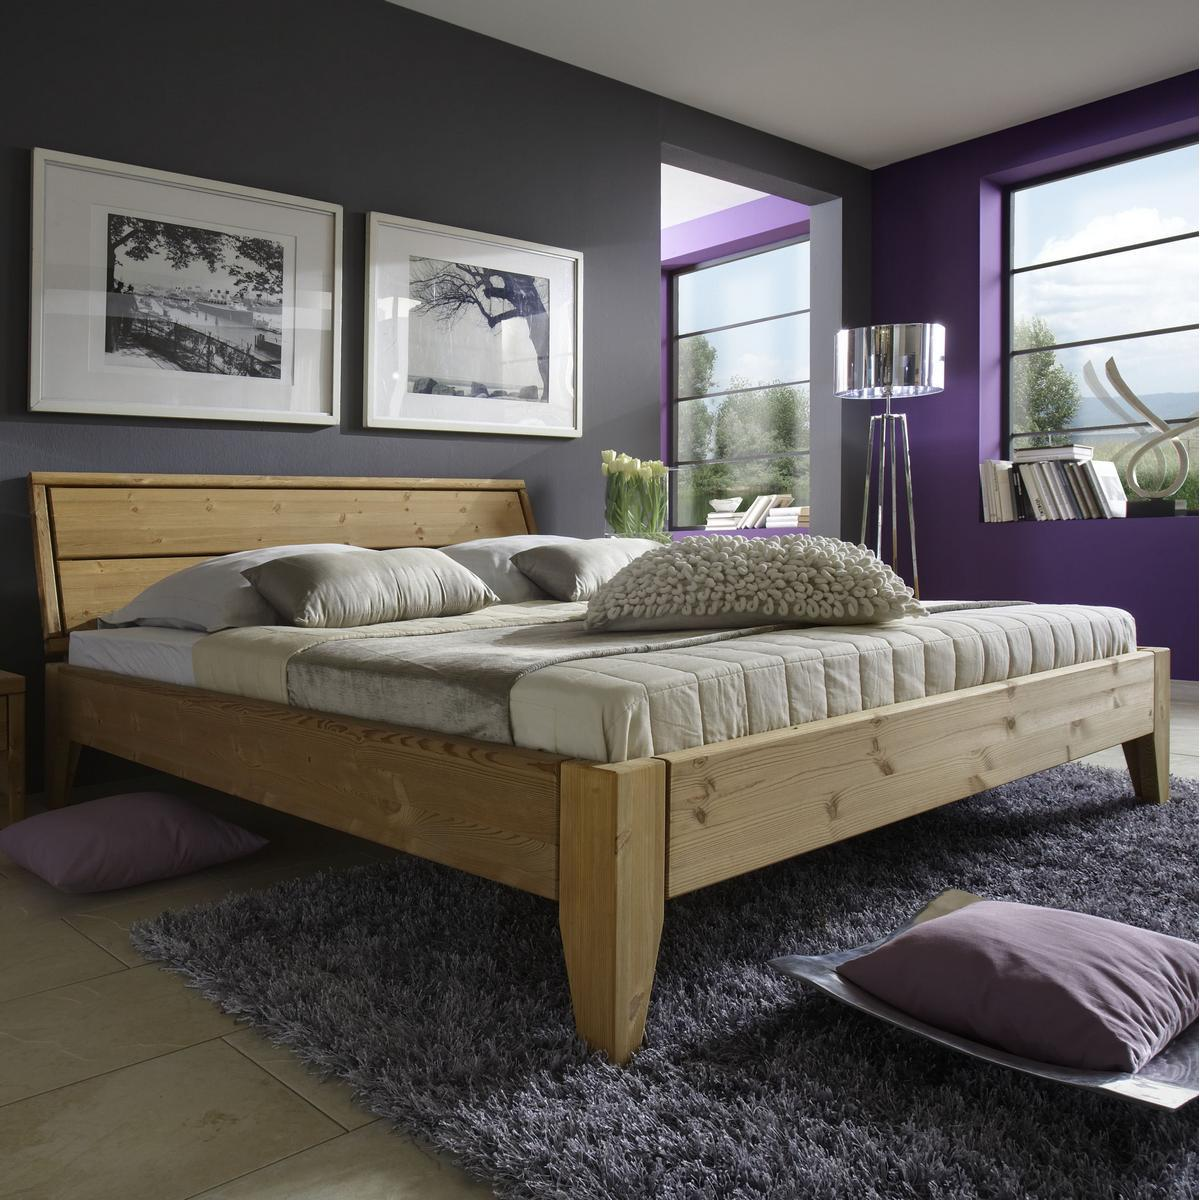 massivholz bett 180x200 easy sleep kiefer massiv gelaugt. Black Bedroom Furniture Sets. Home Design Ideas